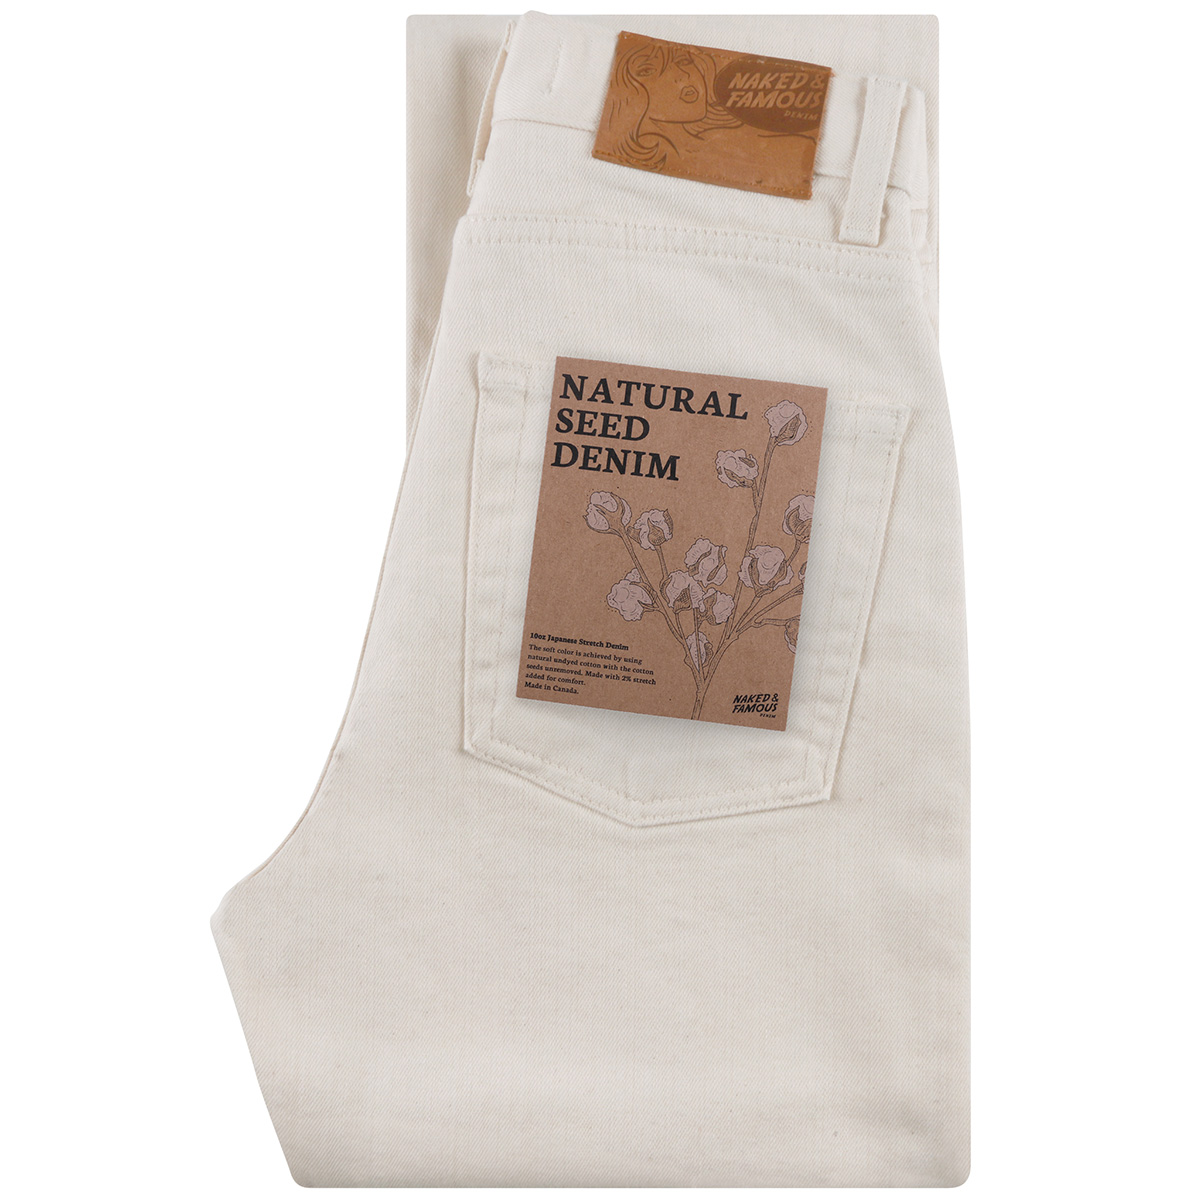 womens_natural_seed_denim.jpg